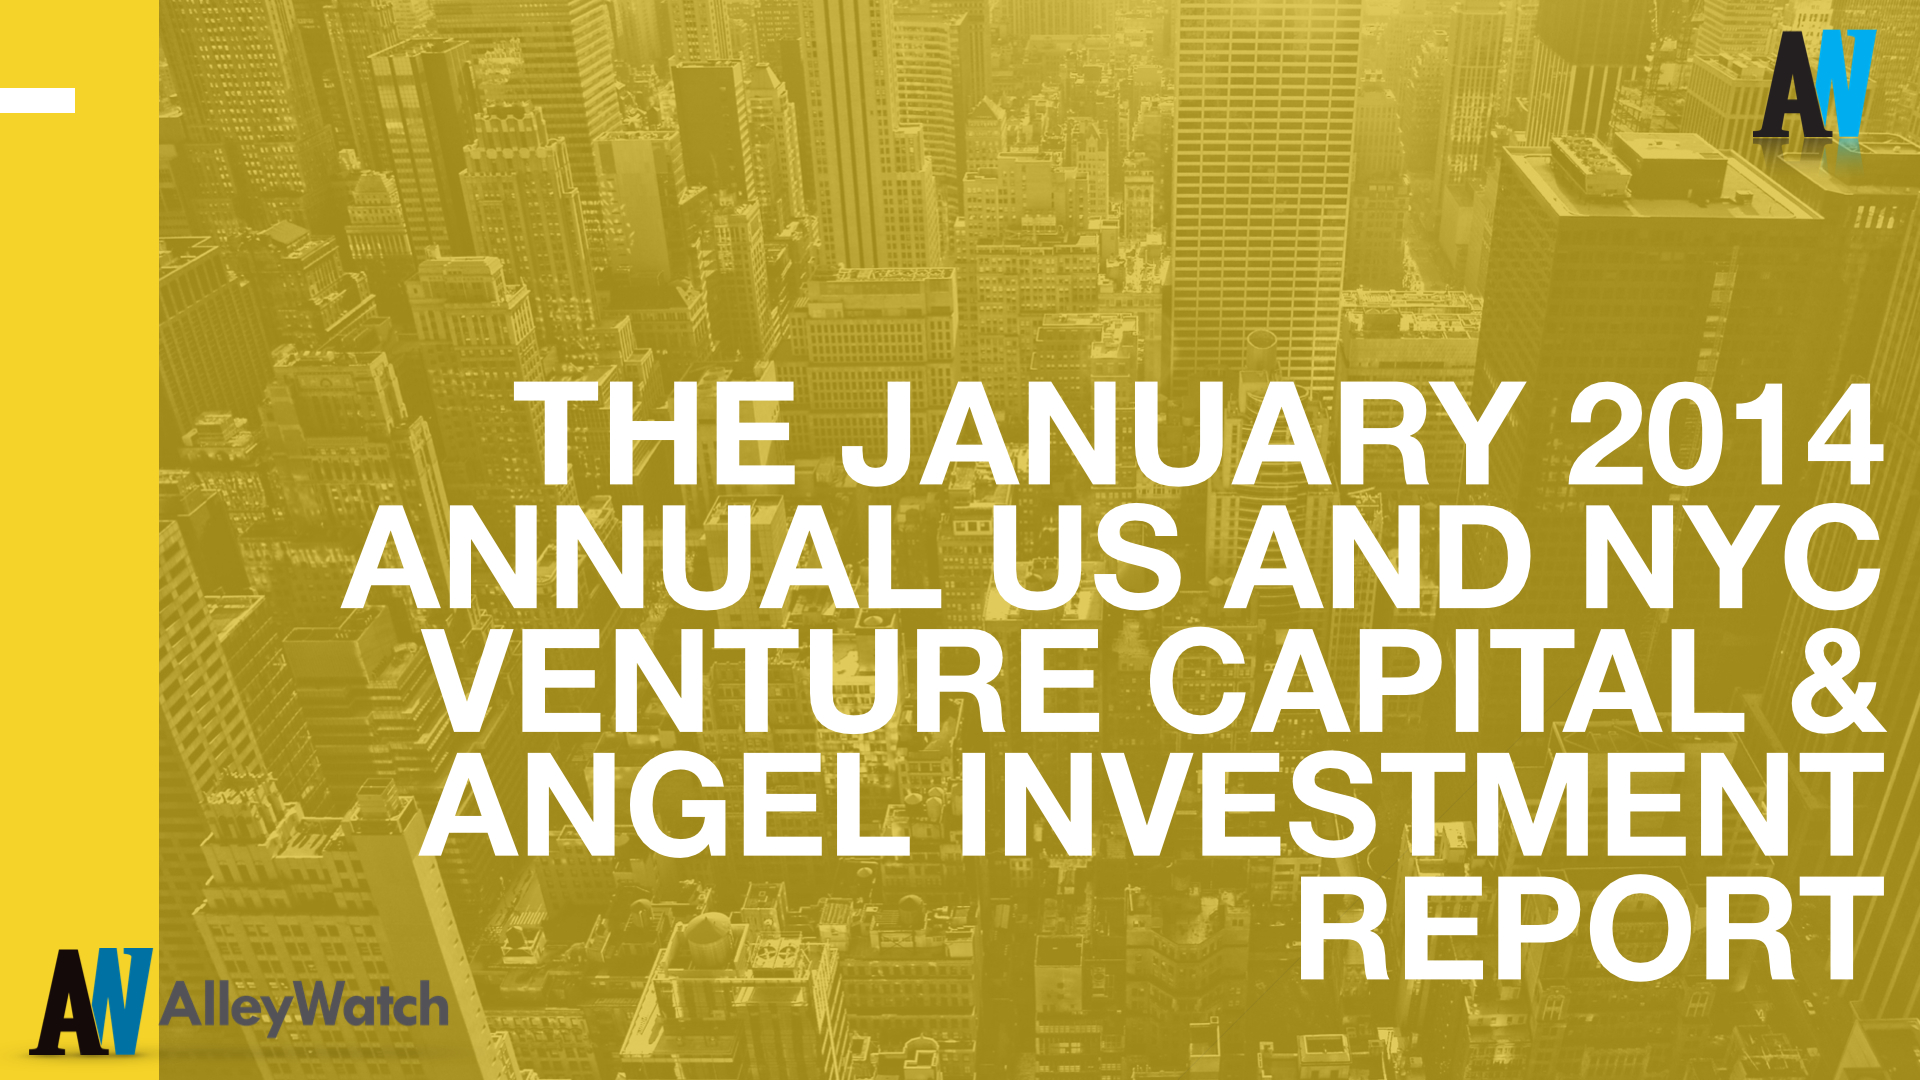 AlleyWatch January 2014 New York and US Venture Capital & Angel Investment Report.001